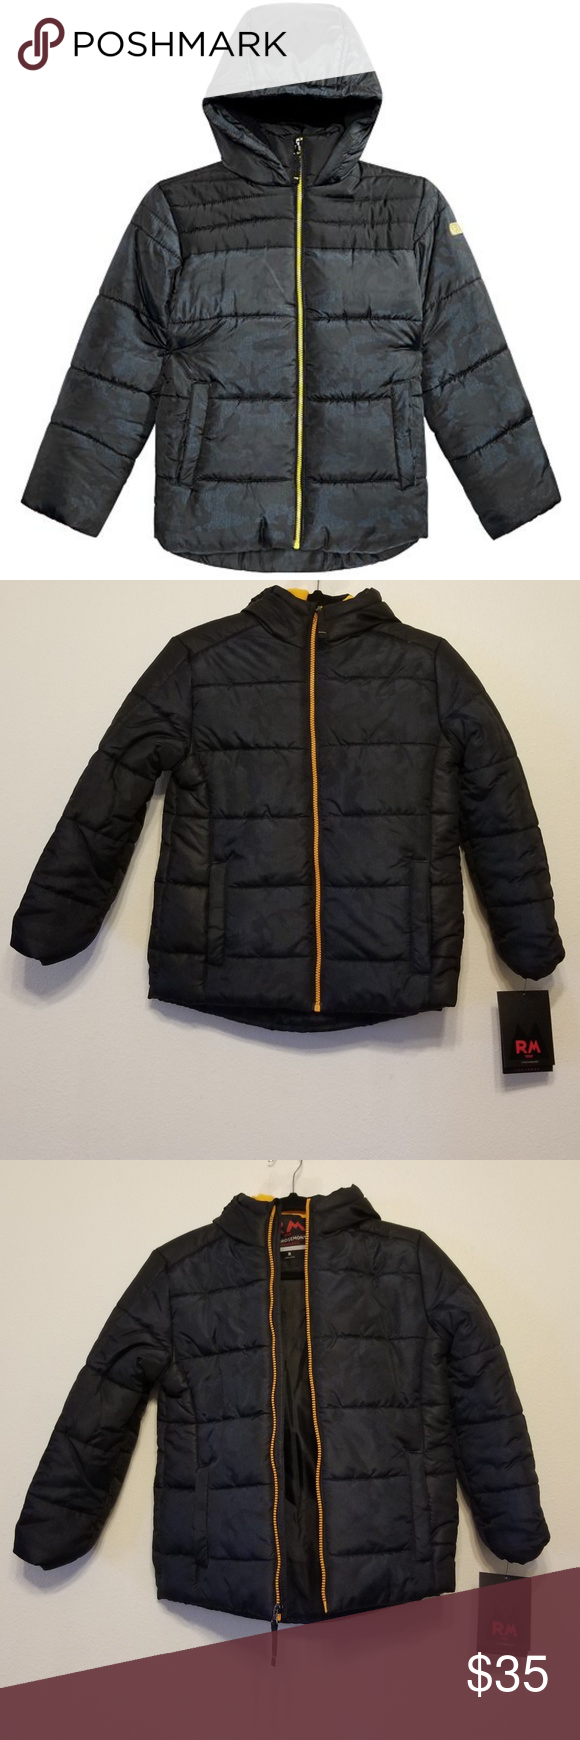 Rm 1958 Performance Quilted Puffer Jacket Quilted Puffer Jacket Jackets Puffer Jackets [ 1740 x 580 Pixel ]